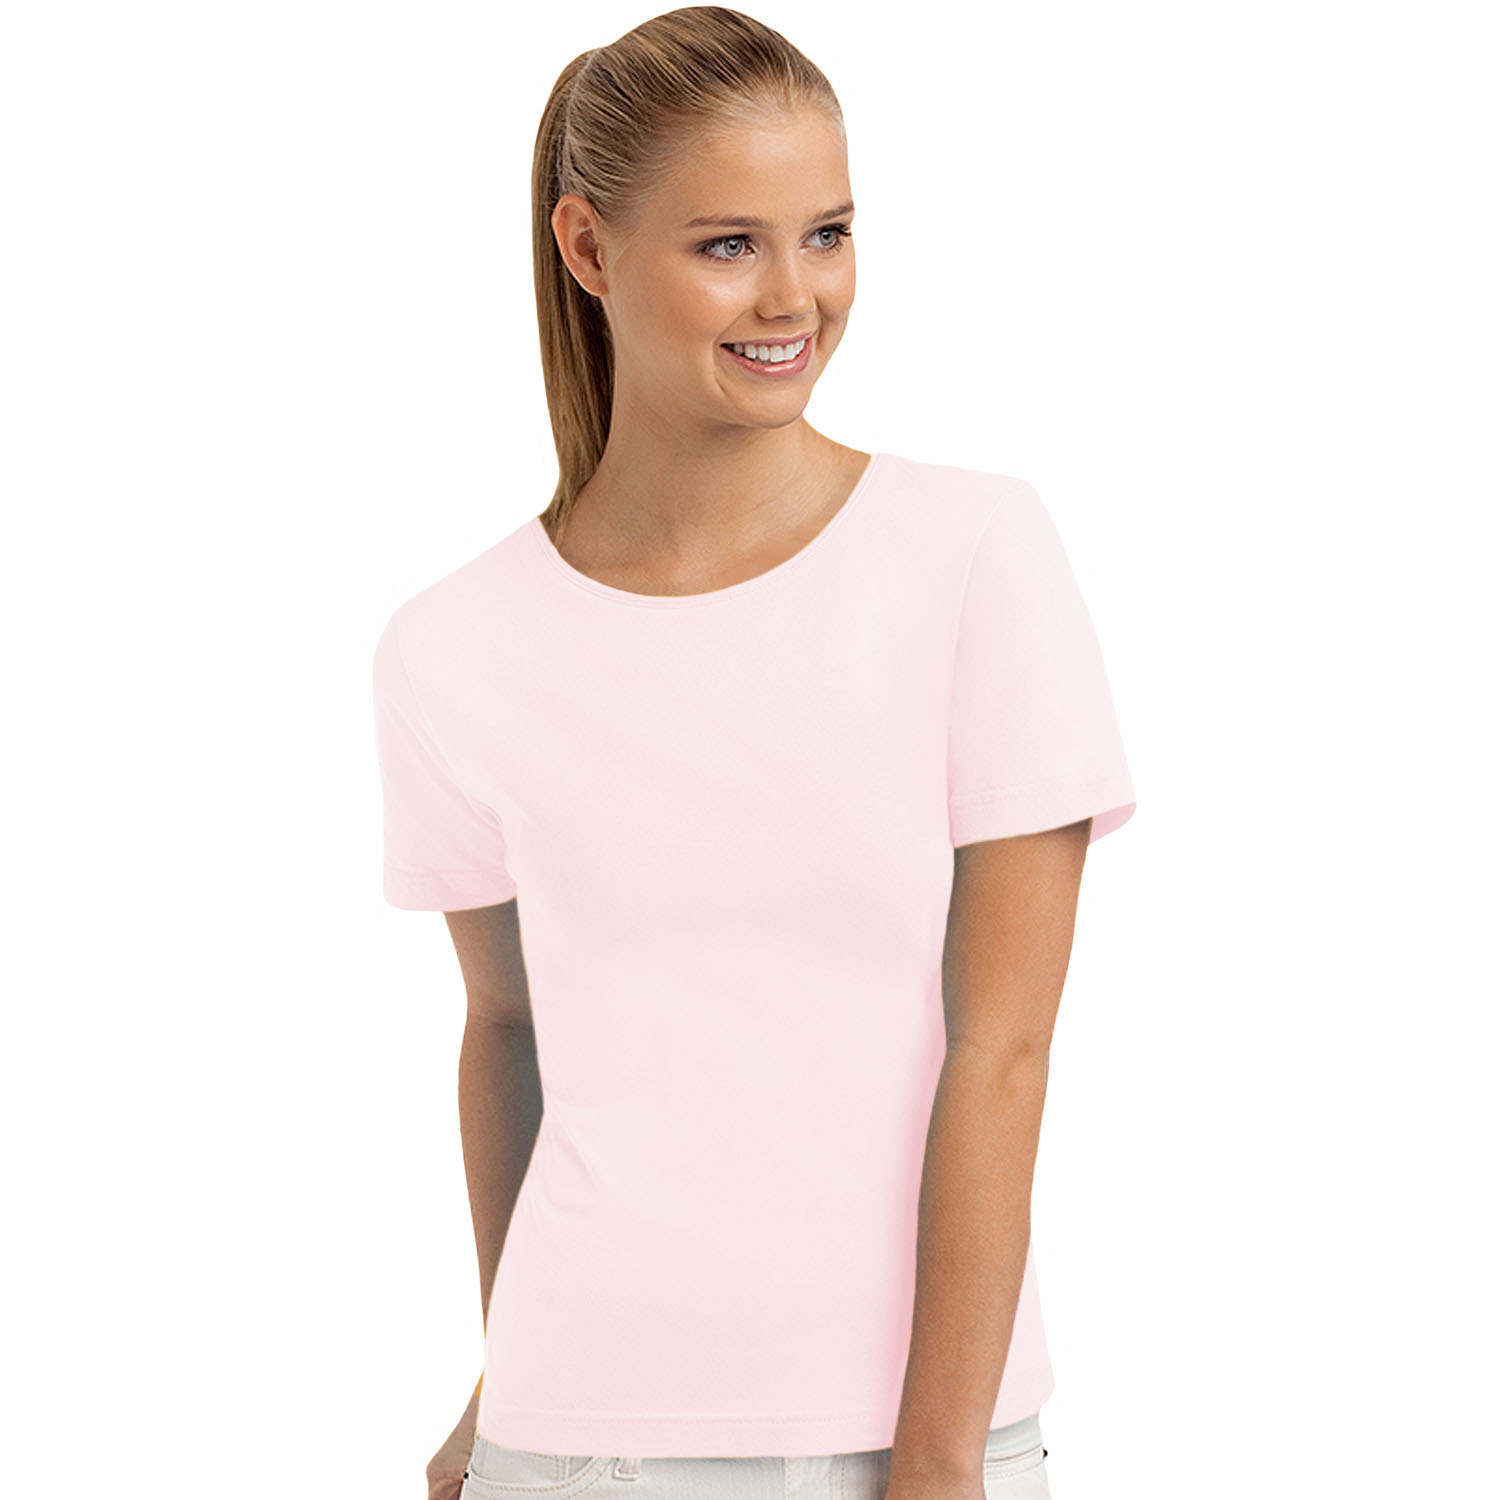 Review the top rated Women's T-Shirts for Oct based on consumer reviews. Shop today and save on the best Women's T-Shirts.